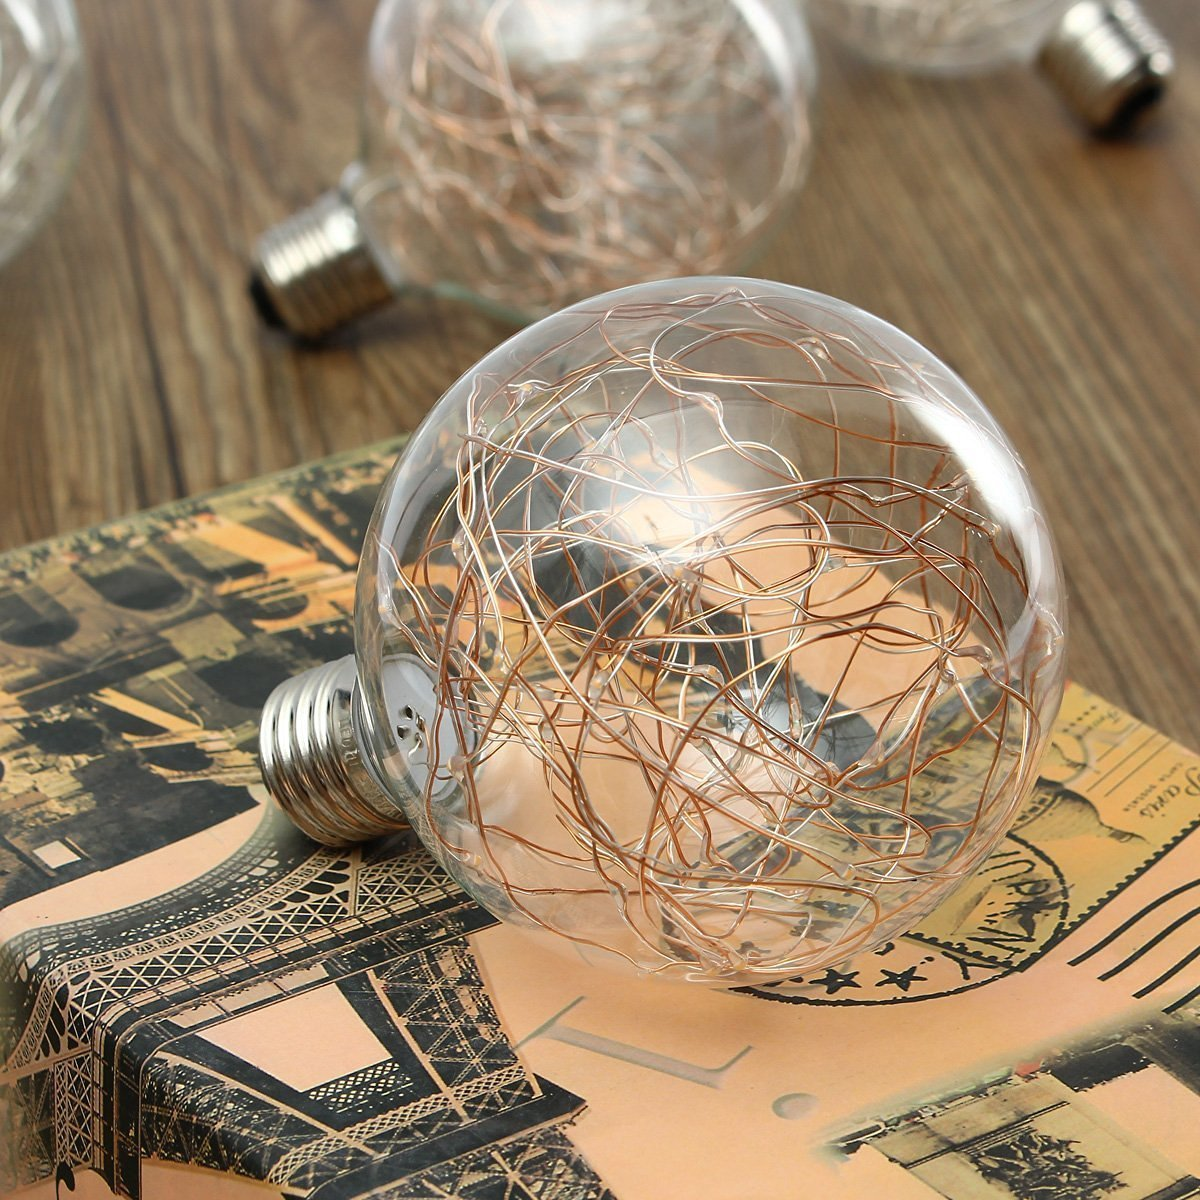 KINGSO G95 Vintage Edison Bulb,E27 Base 3W 300LM Antique Filament Globe Spiral Design LED Lights for Christmas Home Party Cafes Bars Decoration Warm White 4